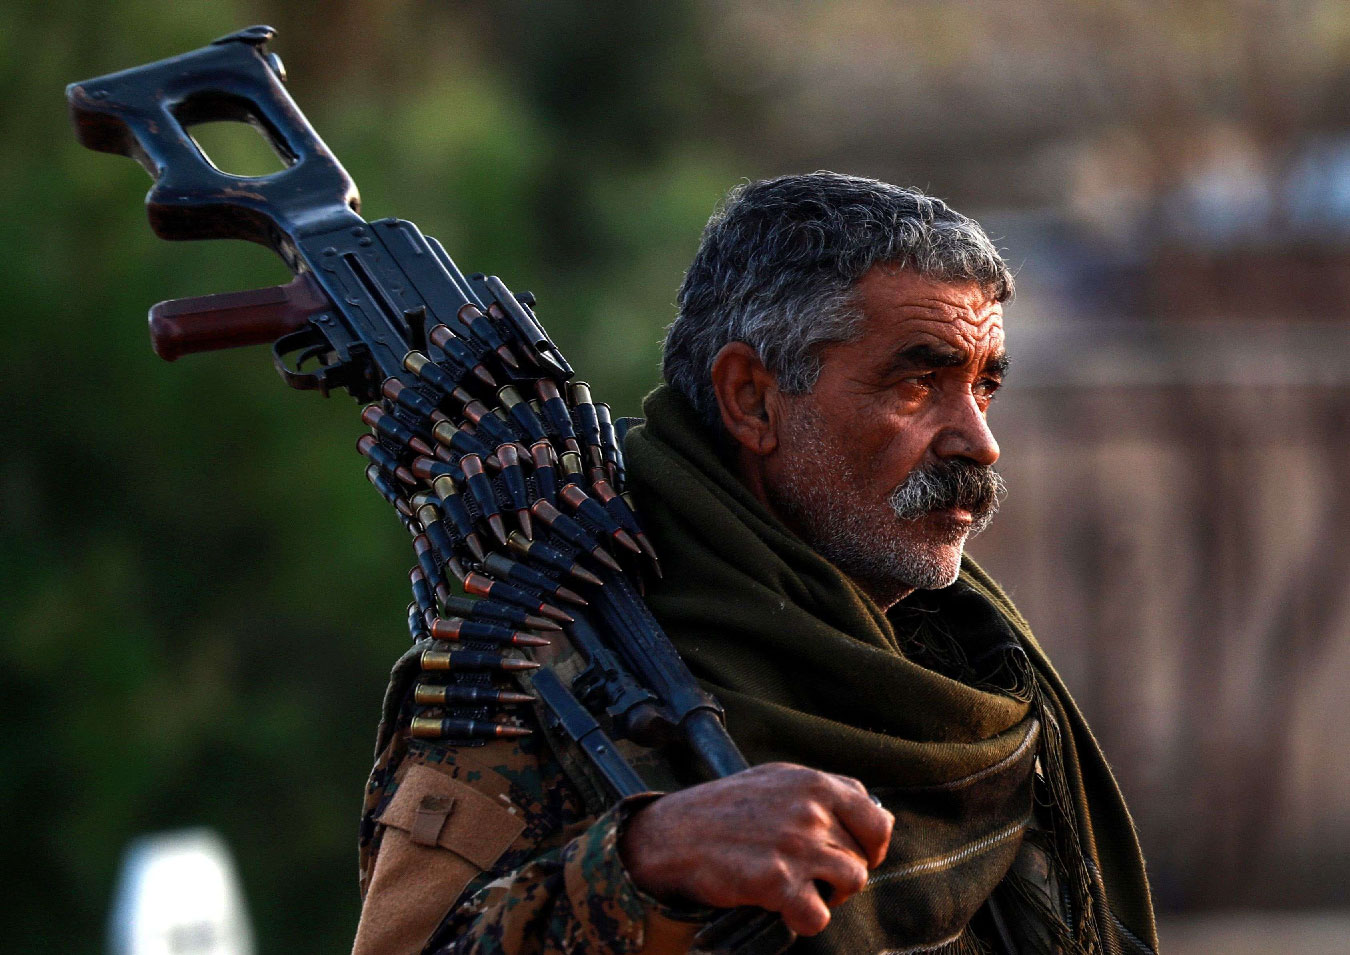 A Syrian Democratic Forces (SDF) fighter holds a machine gun on his shoulder as he attends the funeral of a slain People's Protection Units (YPG) commander in the northeastern city of Qamishli on December 6, 2018.